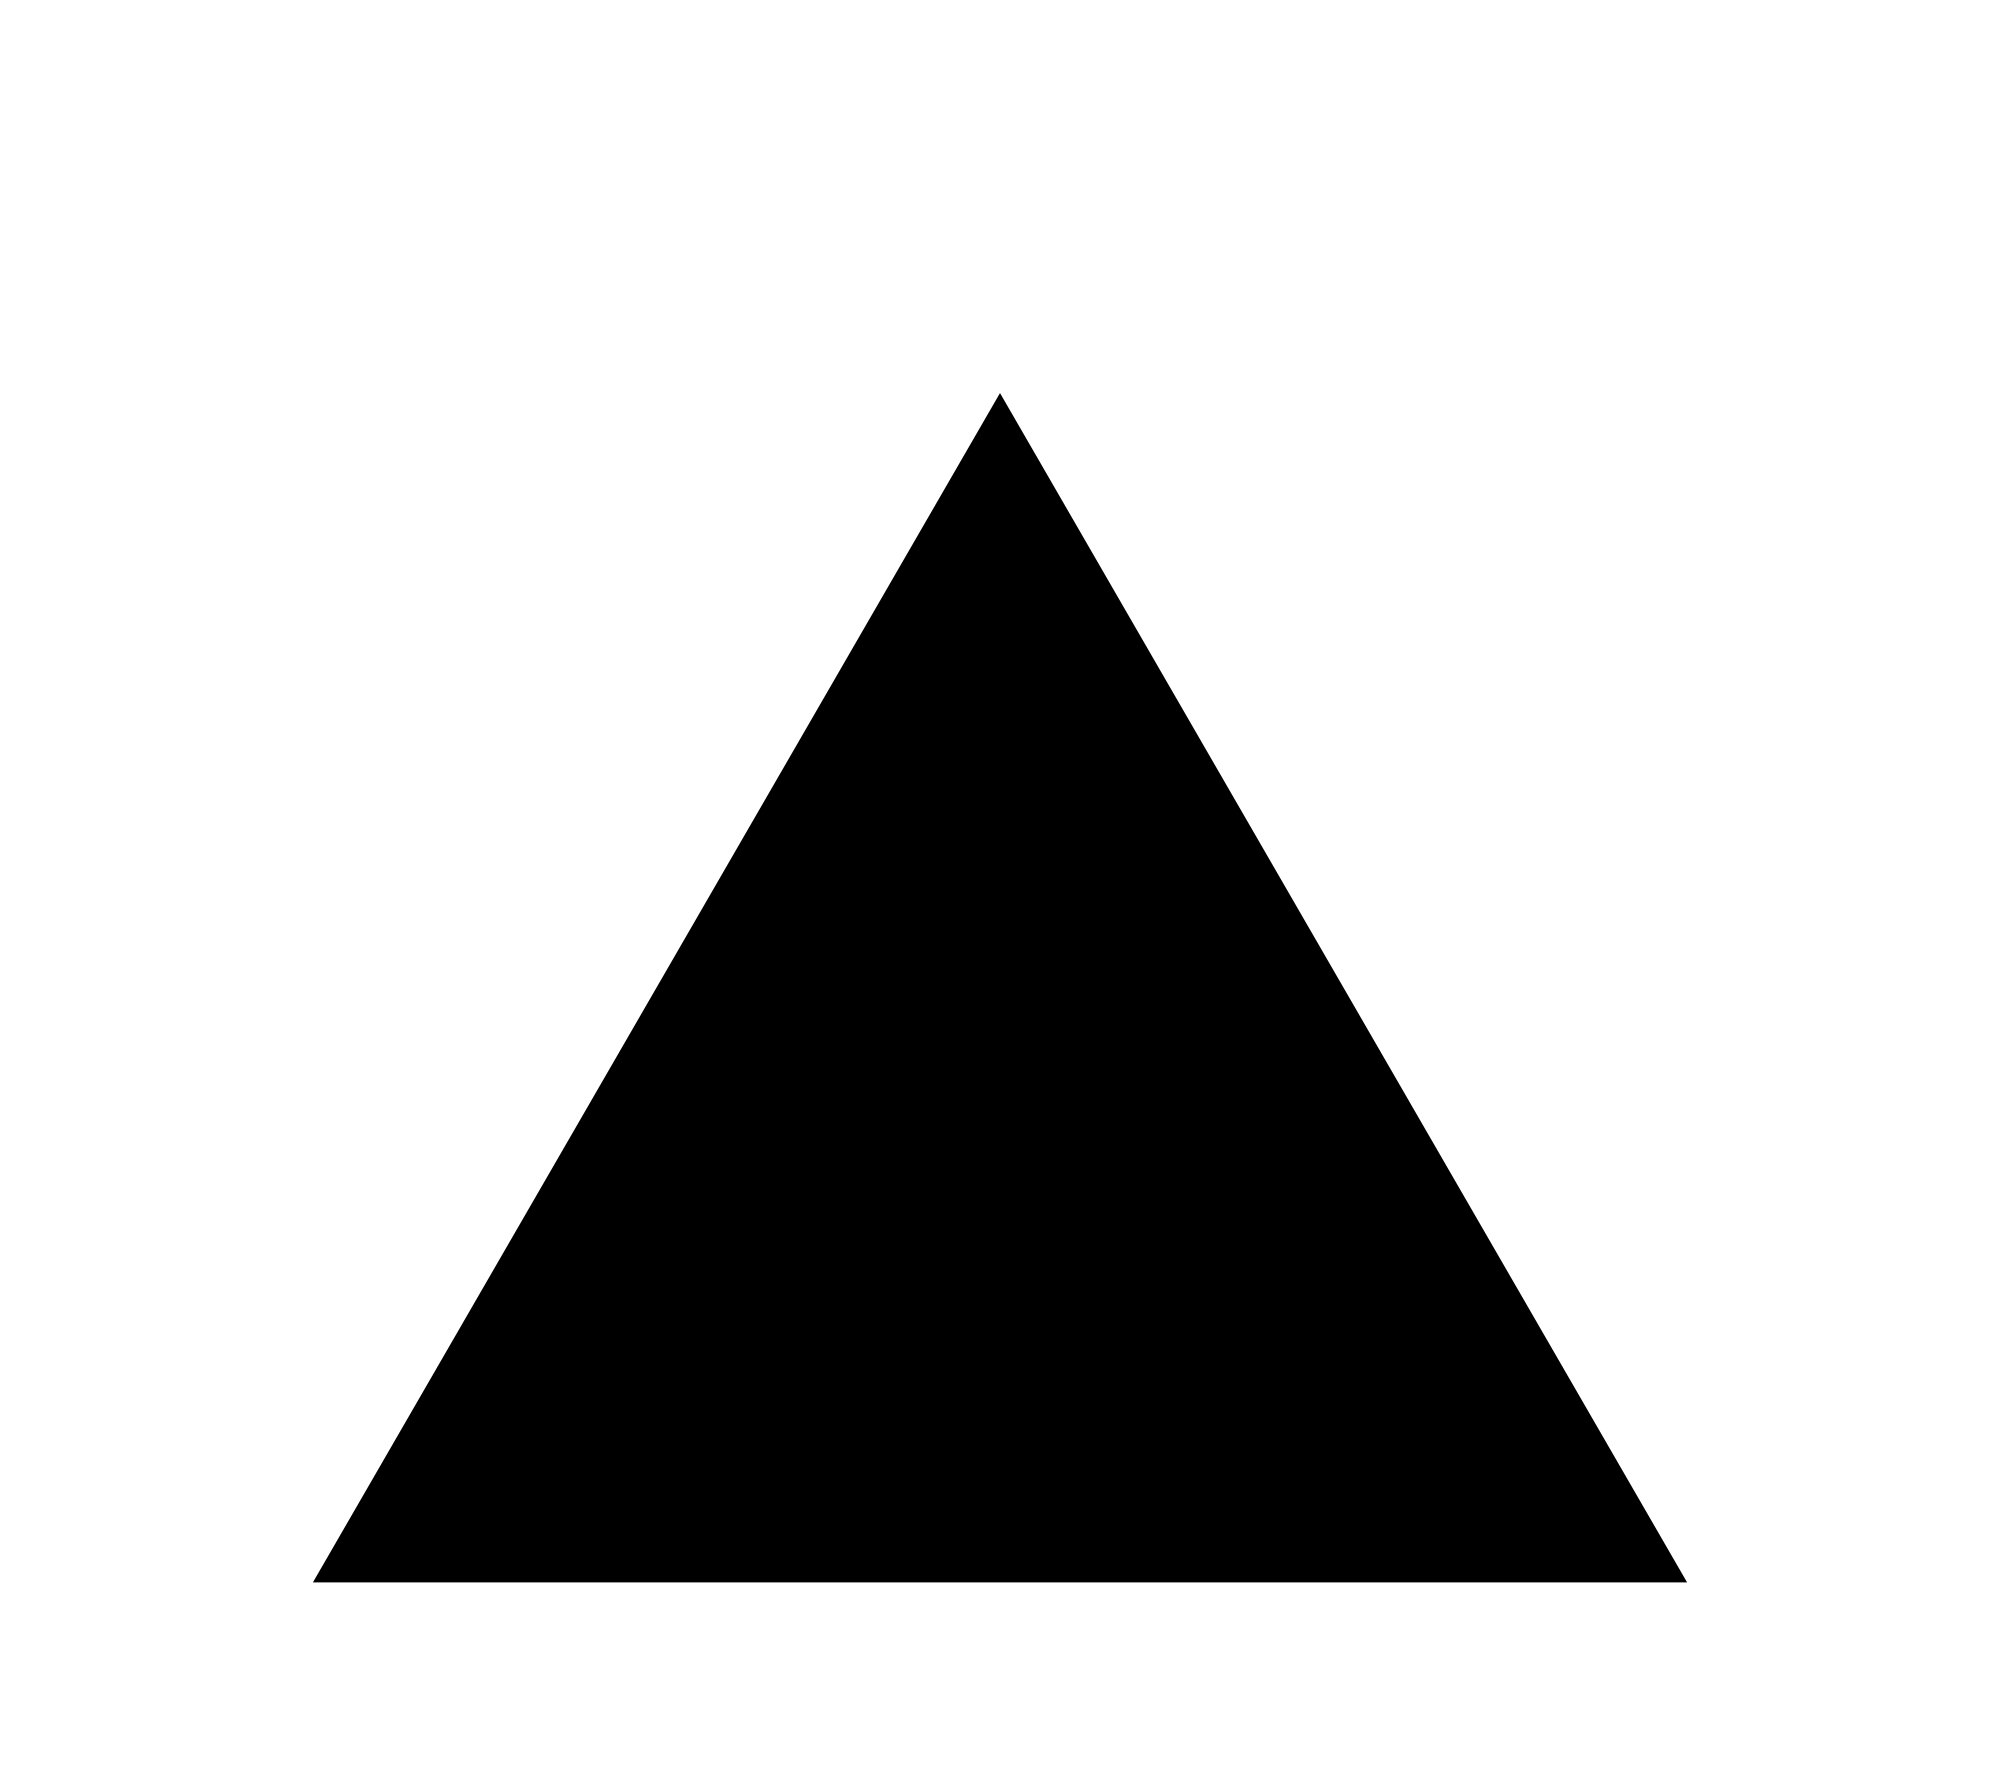 freeuse library Black triangle clipart. File with thick white